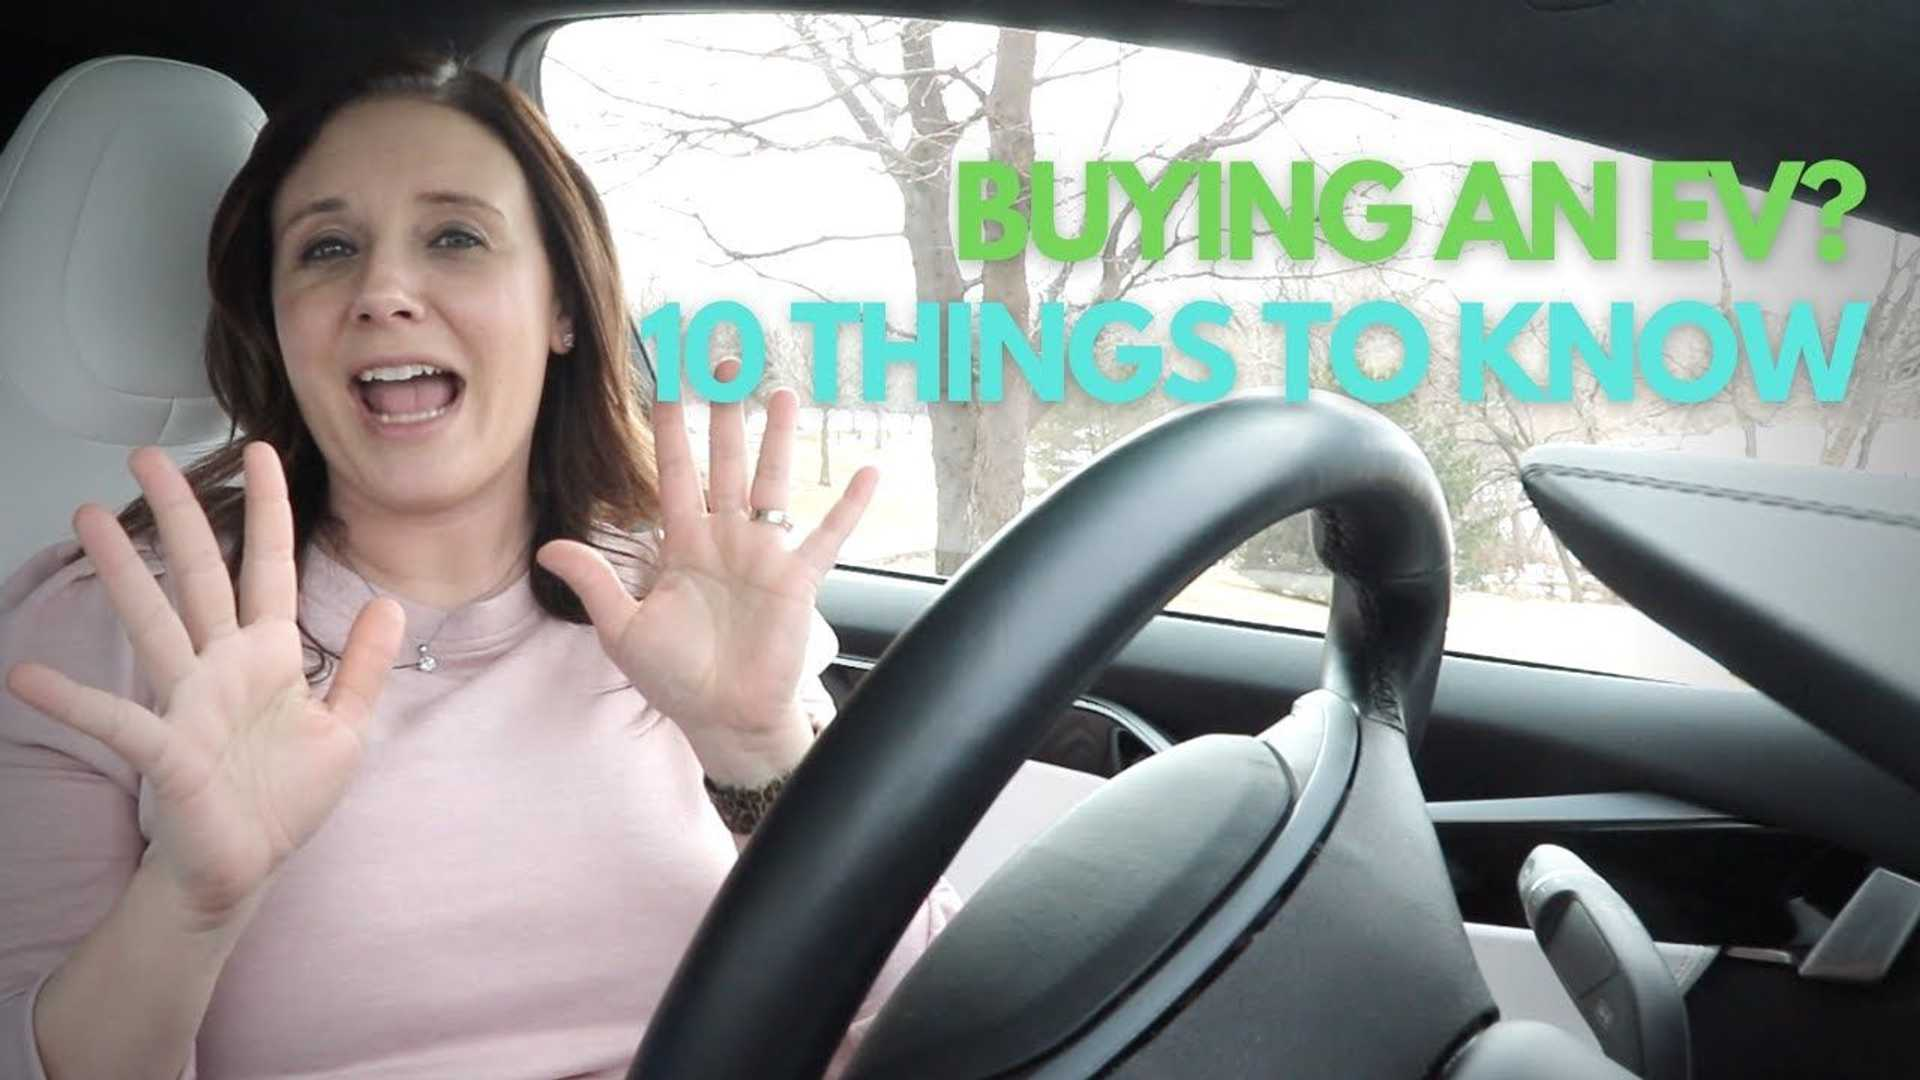 Tesla Model X Owner: 10 Things You Must Know Before Buying An EV